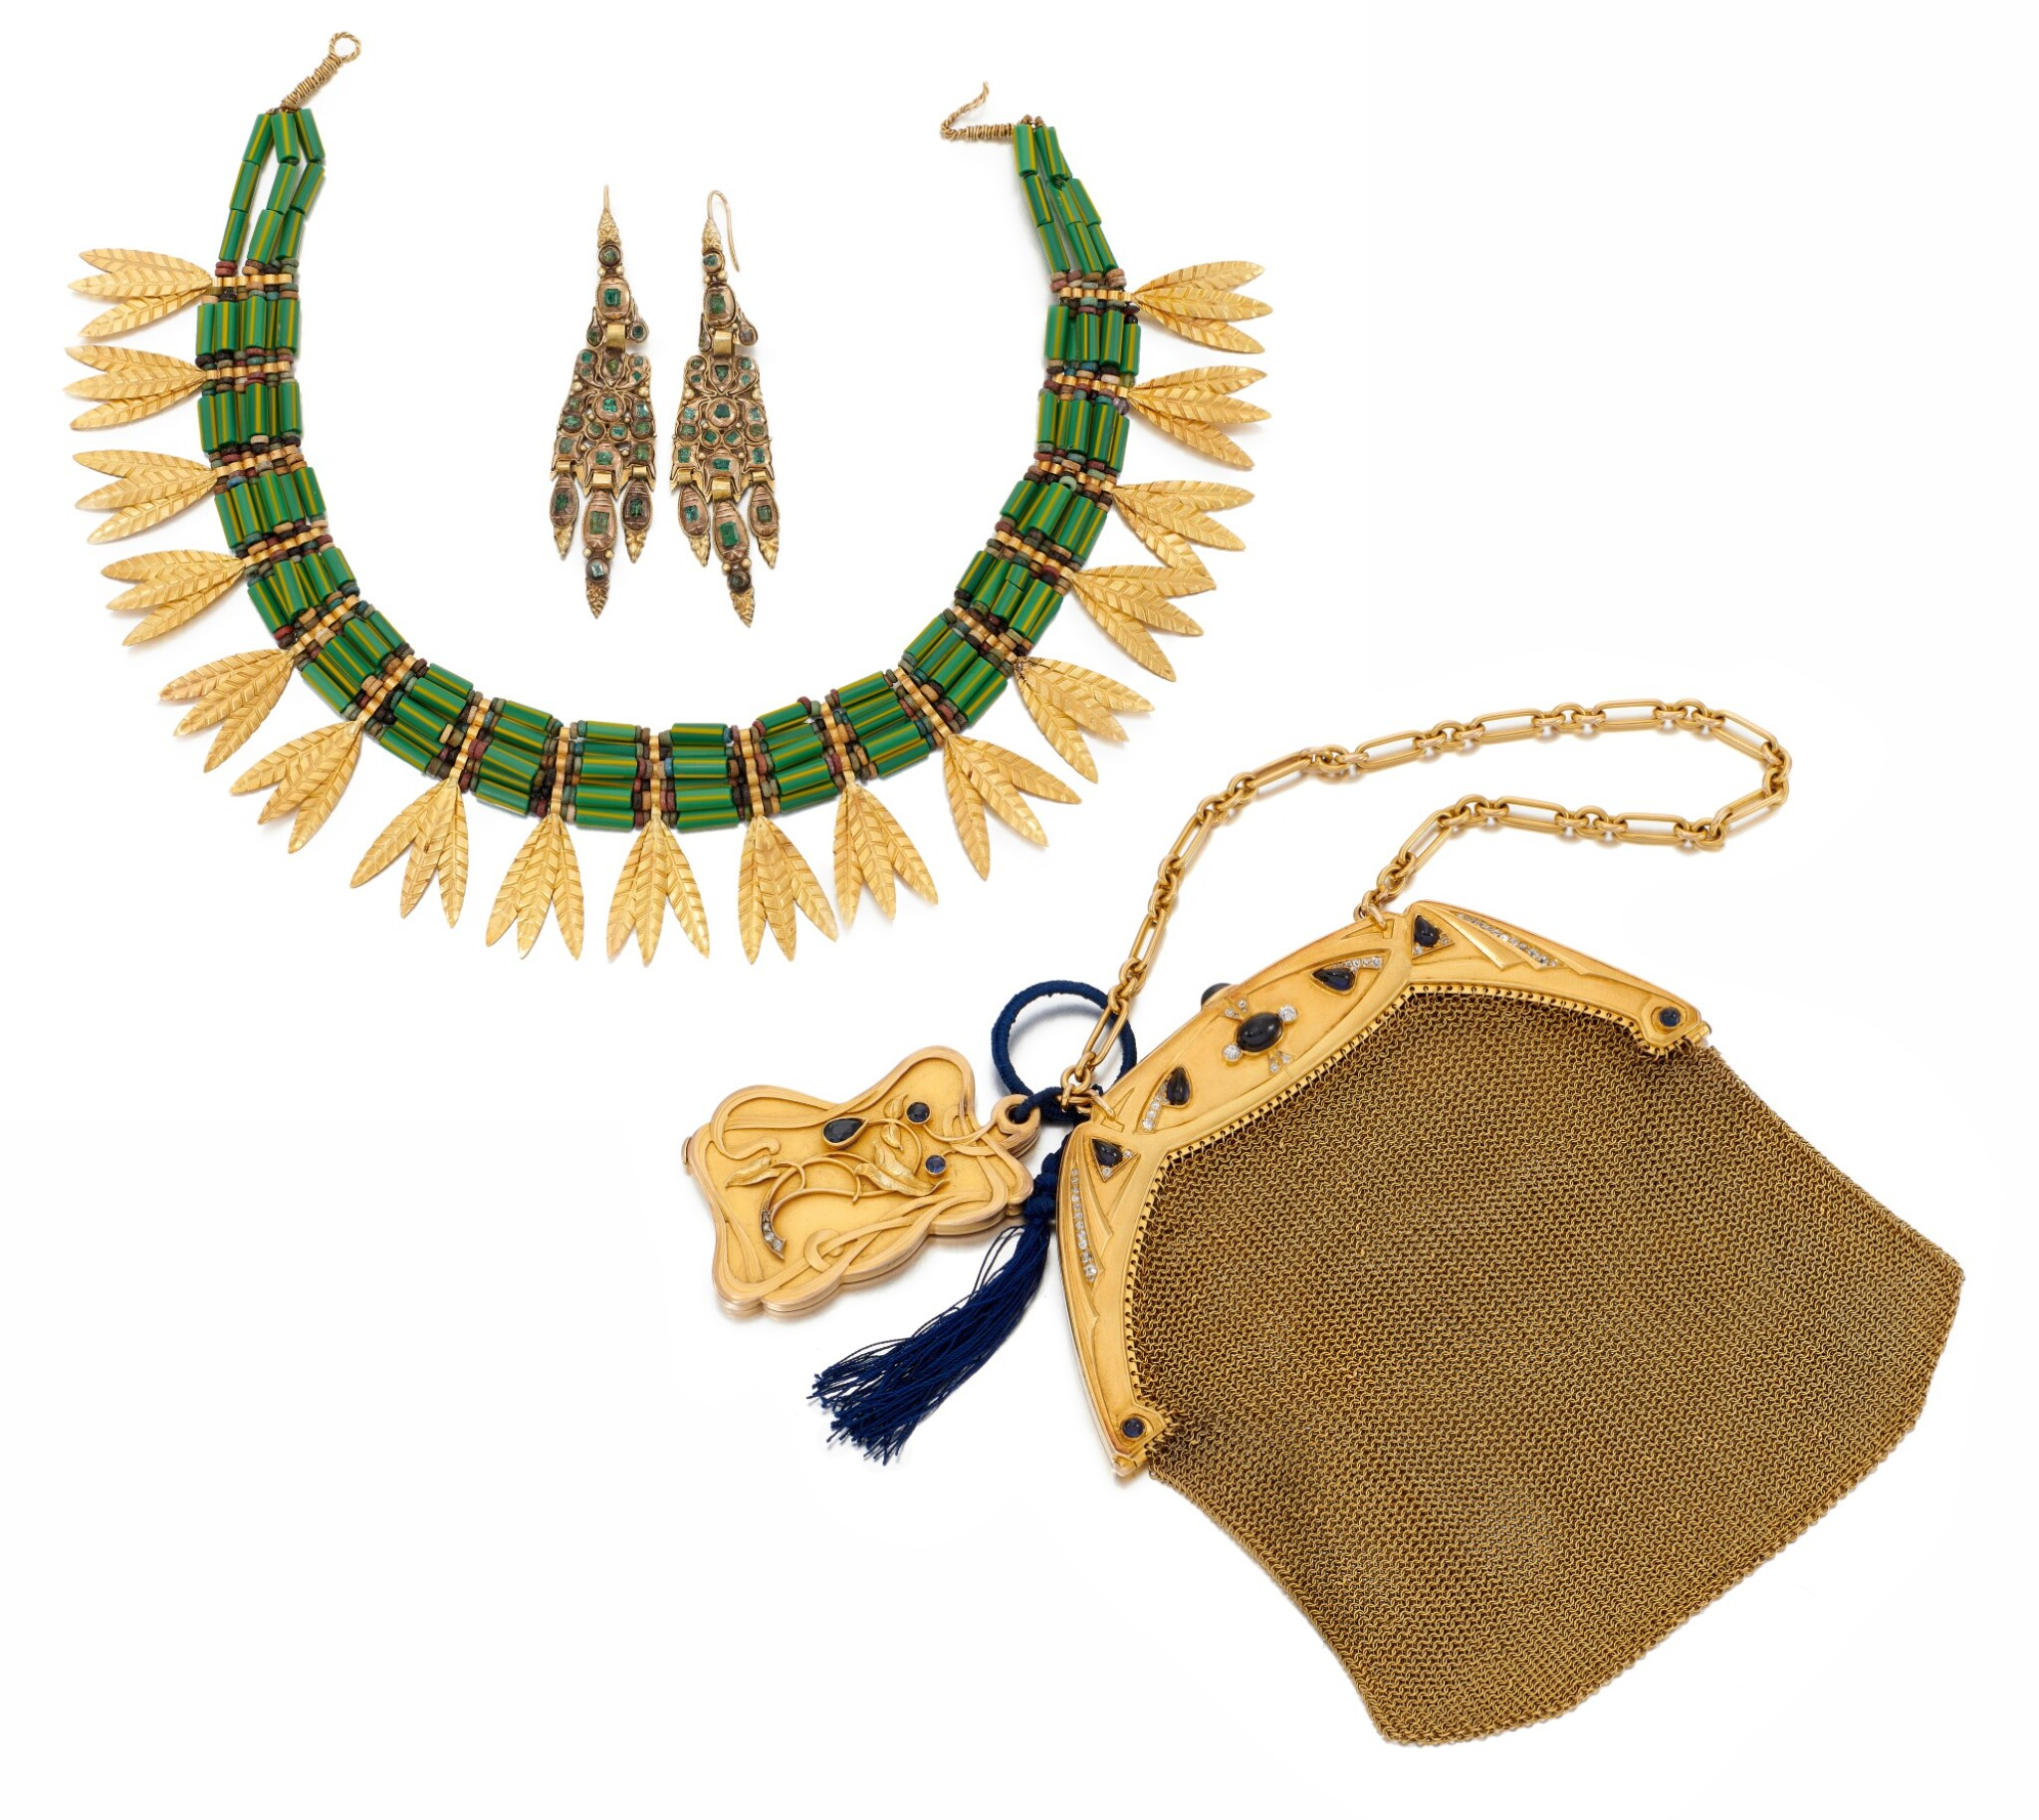 LADY'S EVENING BAG, NECKLACE AND PAIR OF EARRINGS     (BORSETTA DA SERA, COLLANA E PAIO DI ORECCHINI)